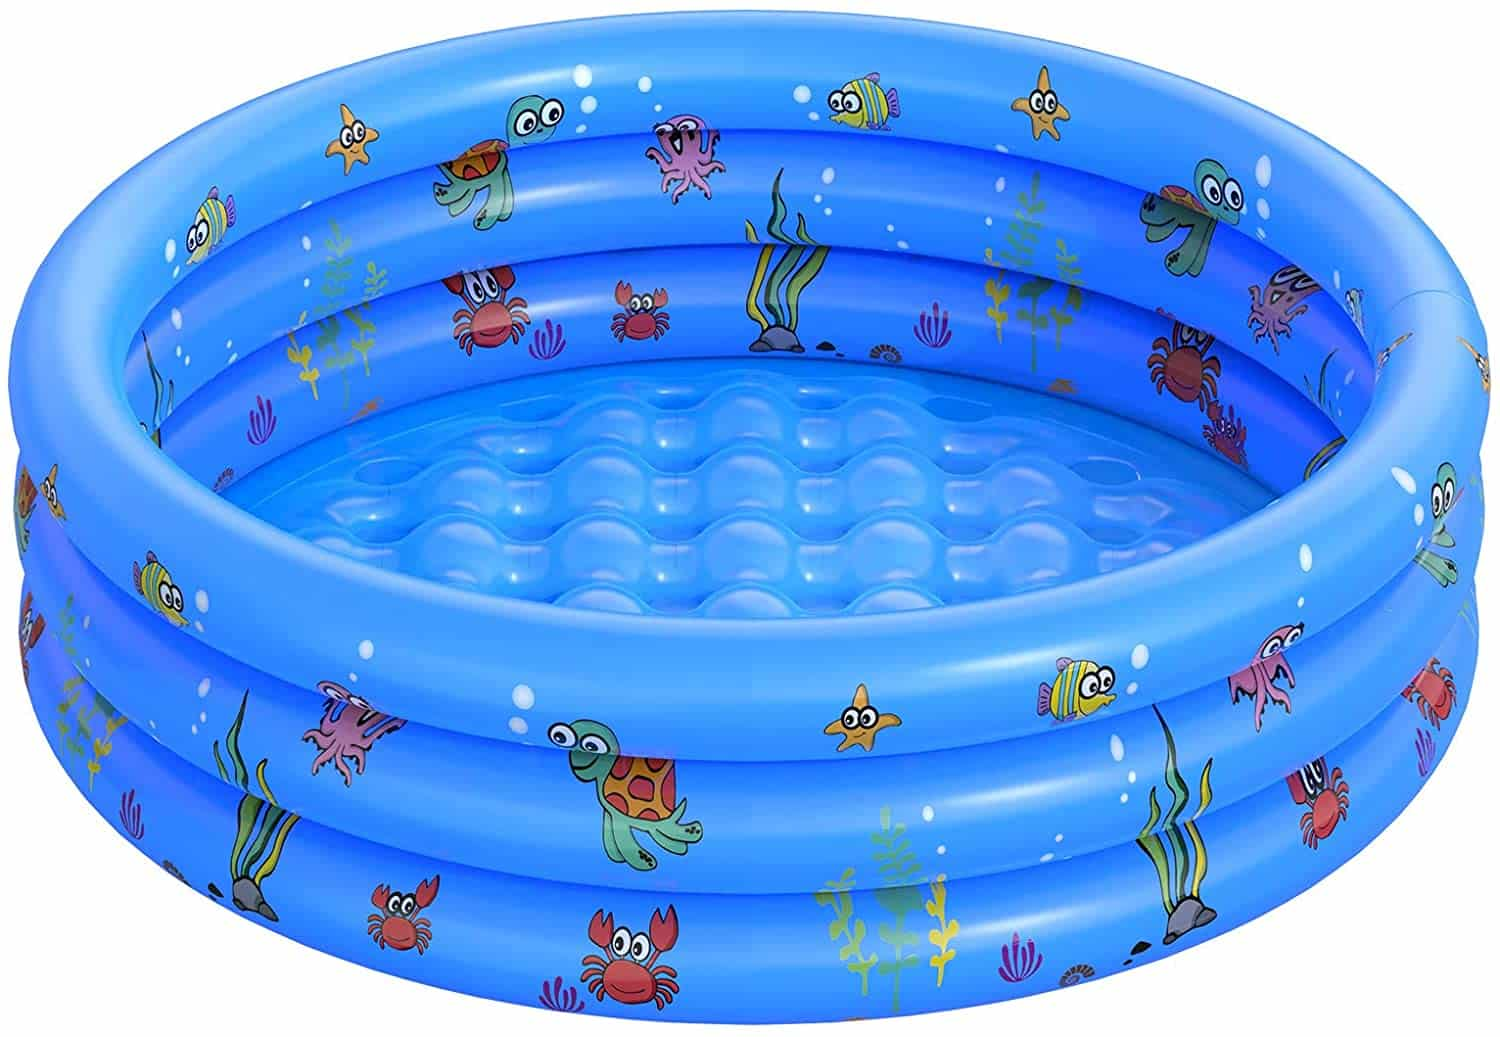 Garden Round Inflatable Baby Swimming Pool